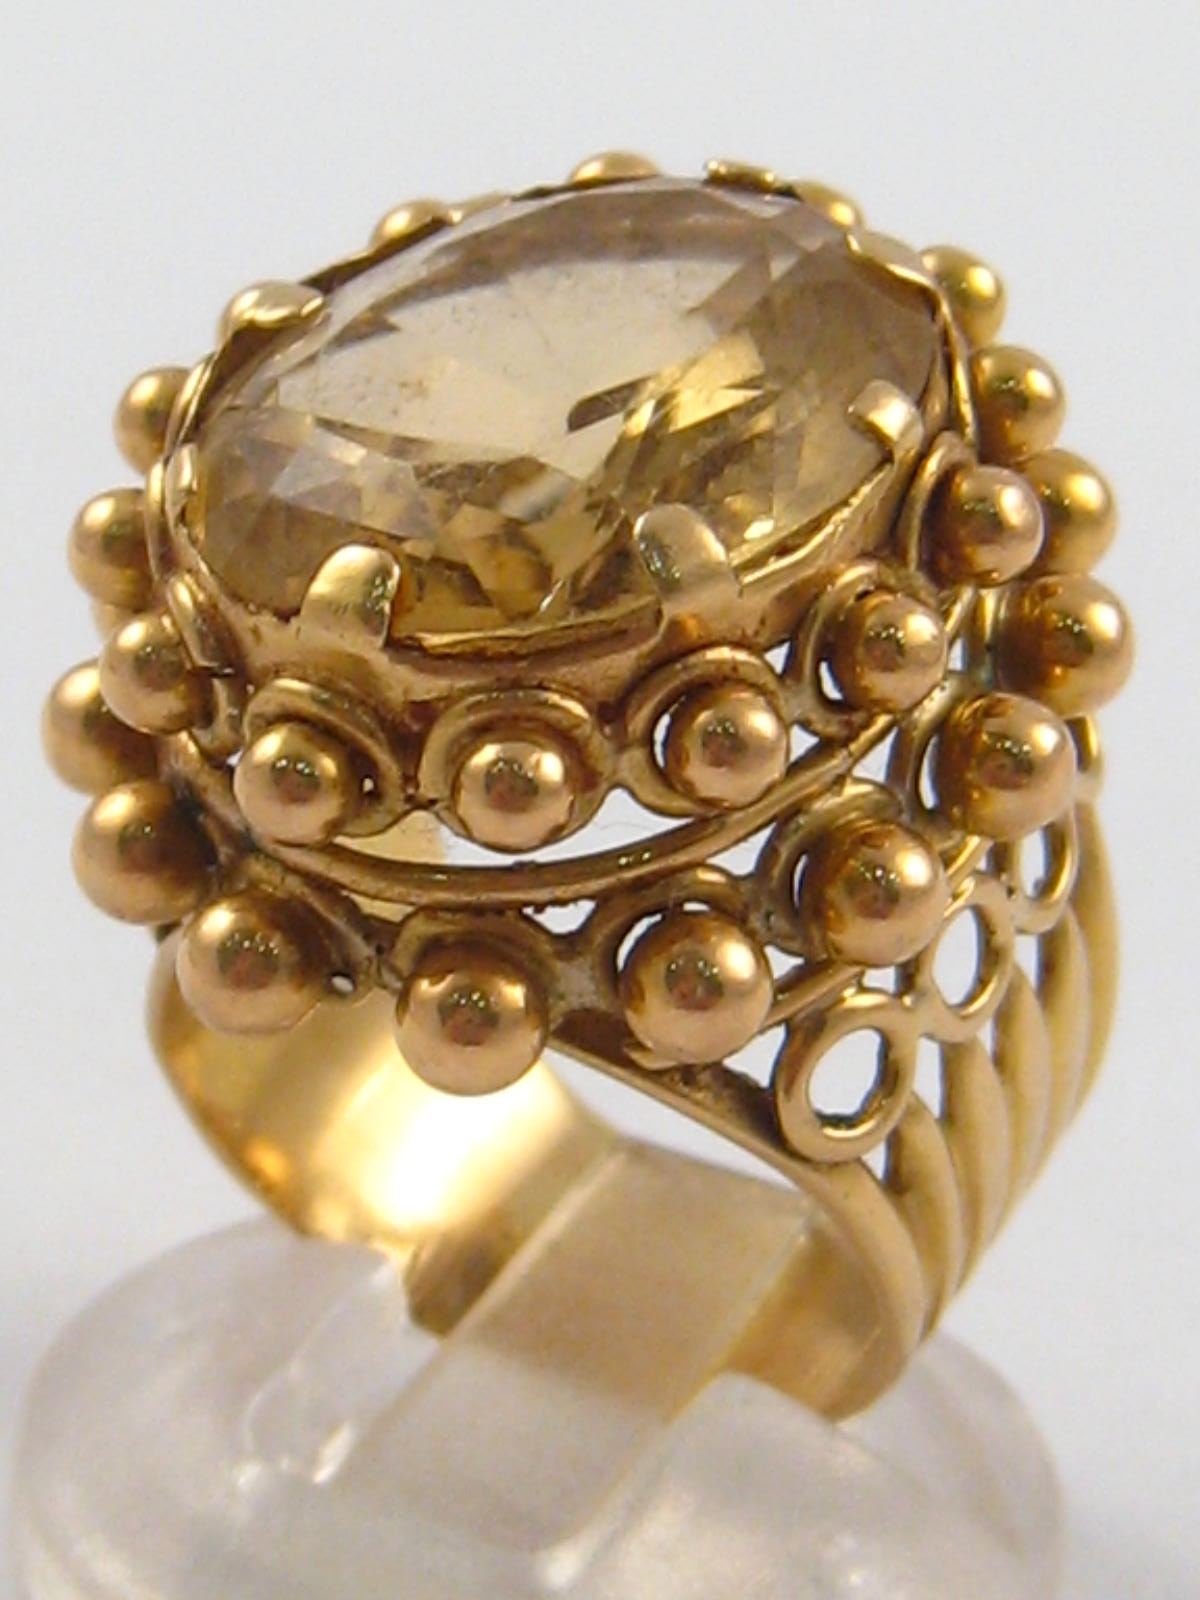 A yellow metal (tests 18 carat gold) citrine ring, citrine approx. 18 x 14mm, ring size M, 12.7 gms. - Image 2 of 2